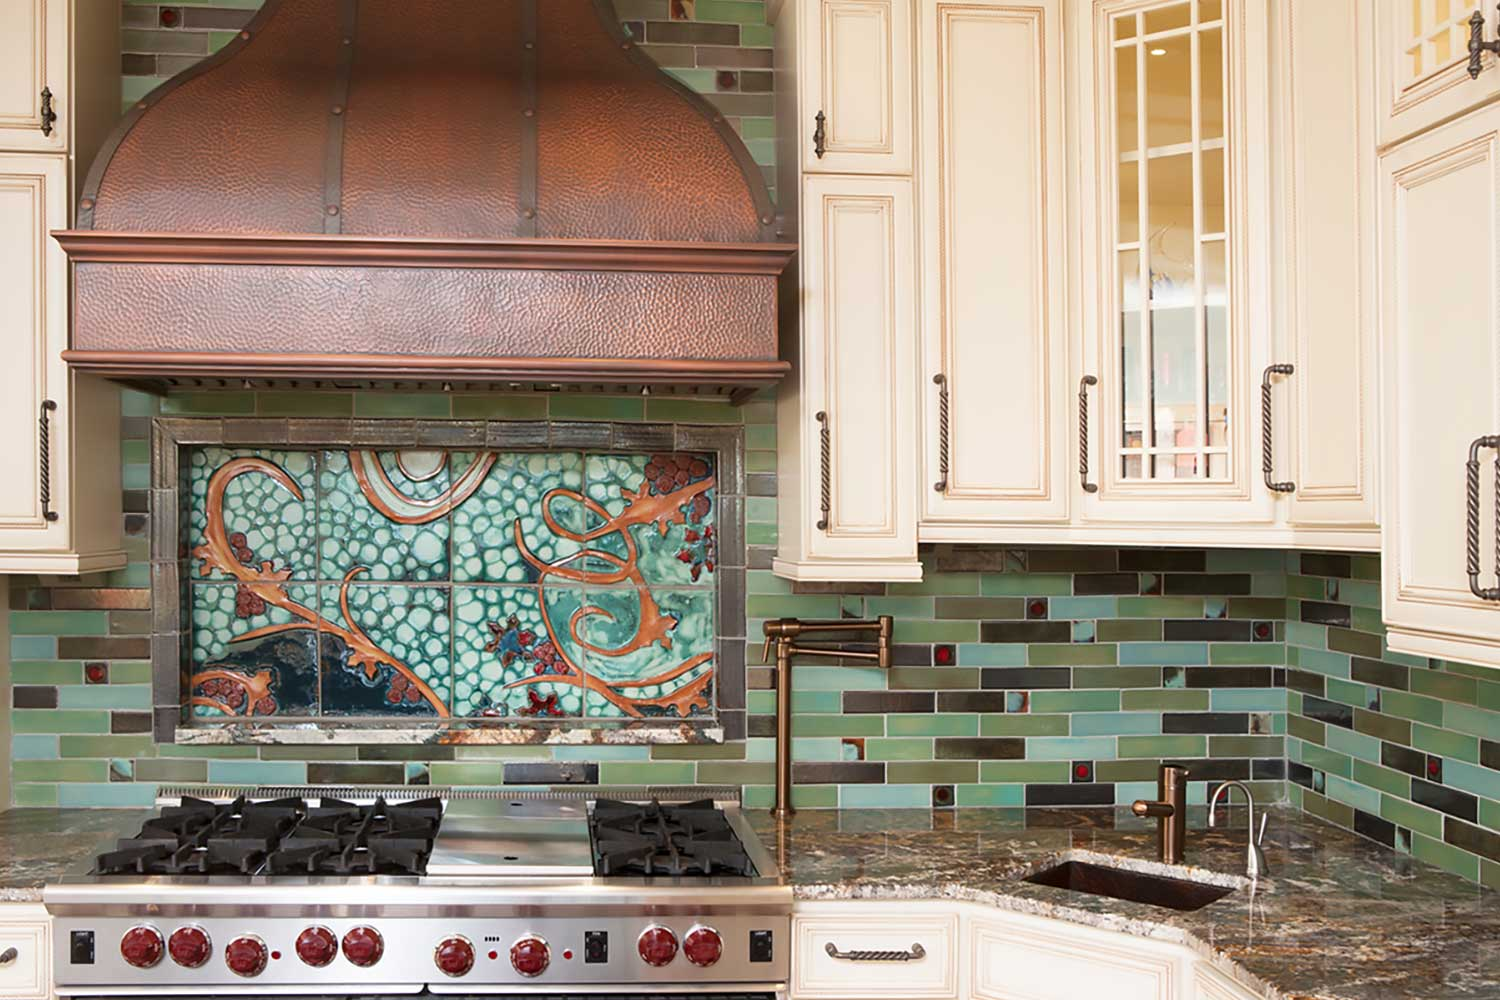 Tile Mural Kitchen Backsplash By Clay Squared To Infinity